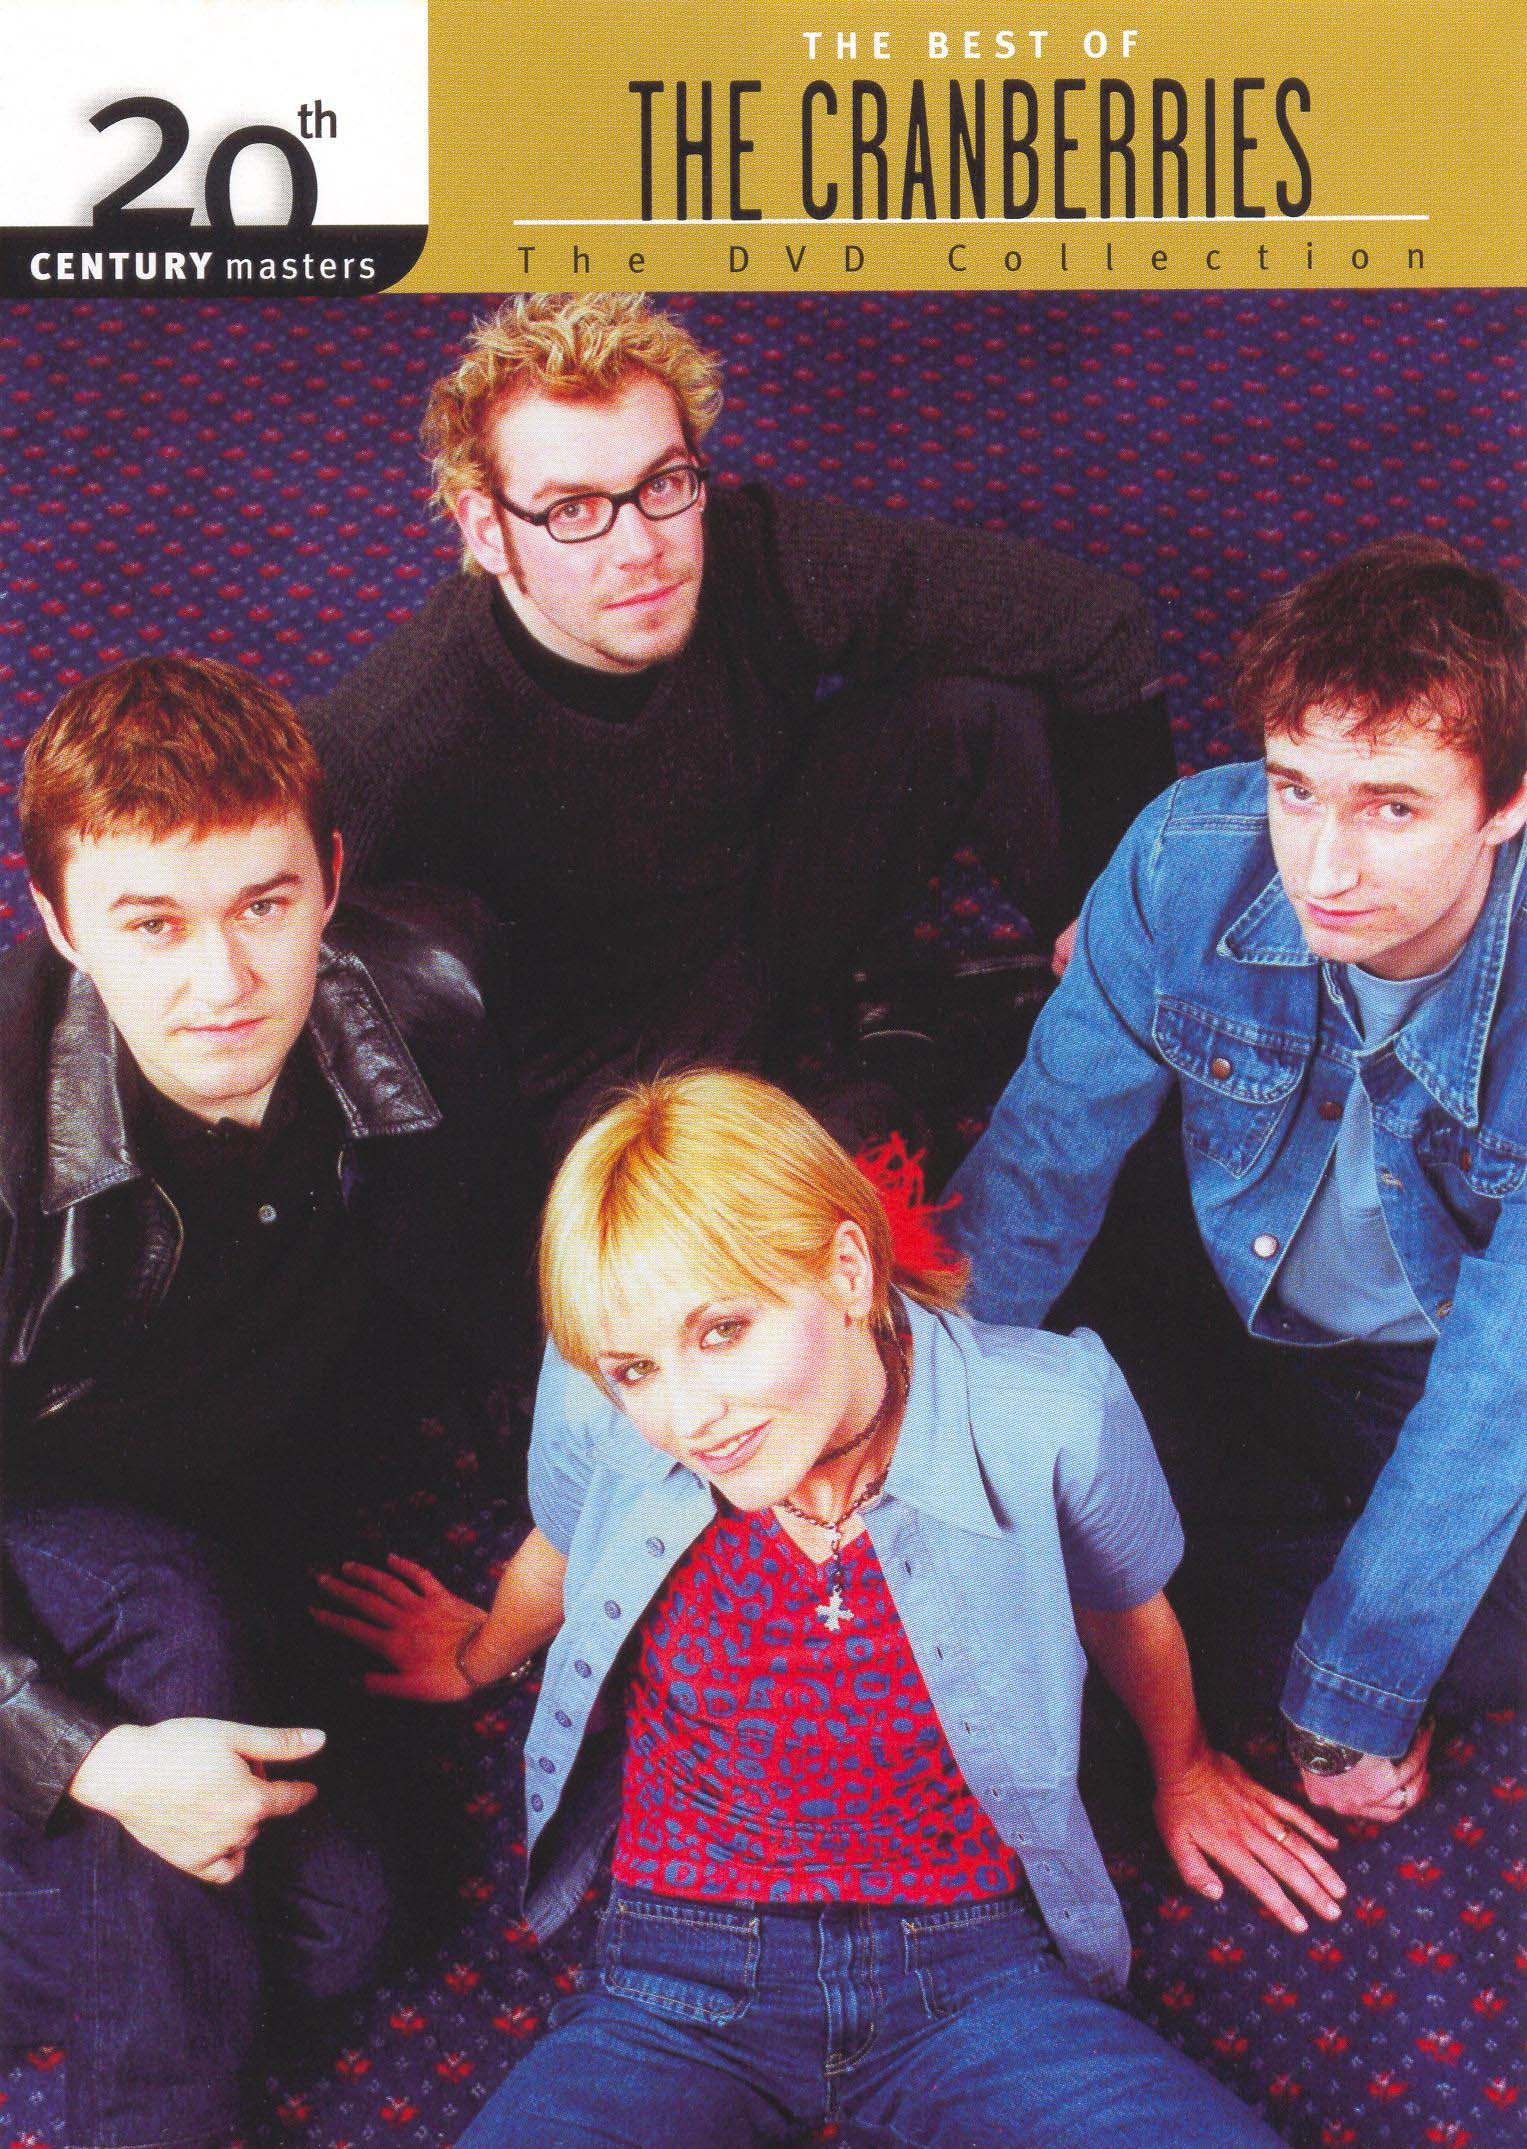 20th Century Masters: The Best of the Cranberries